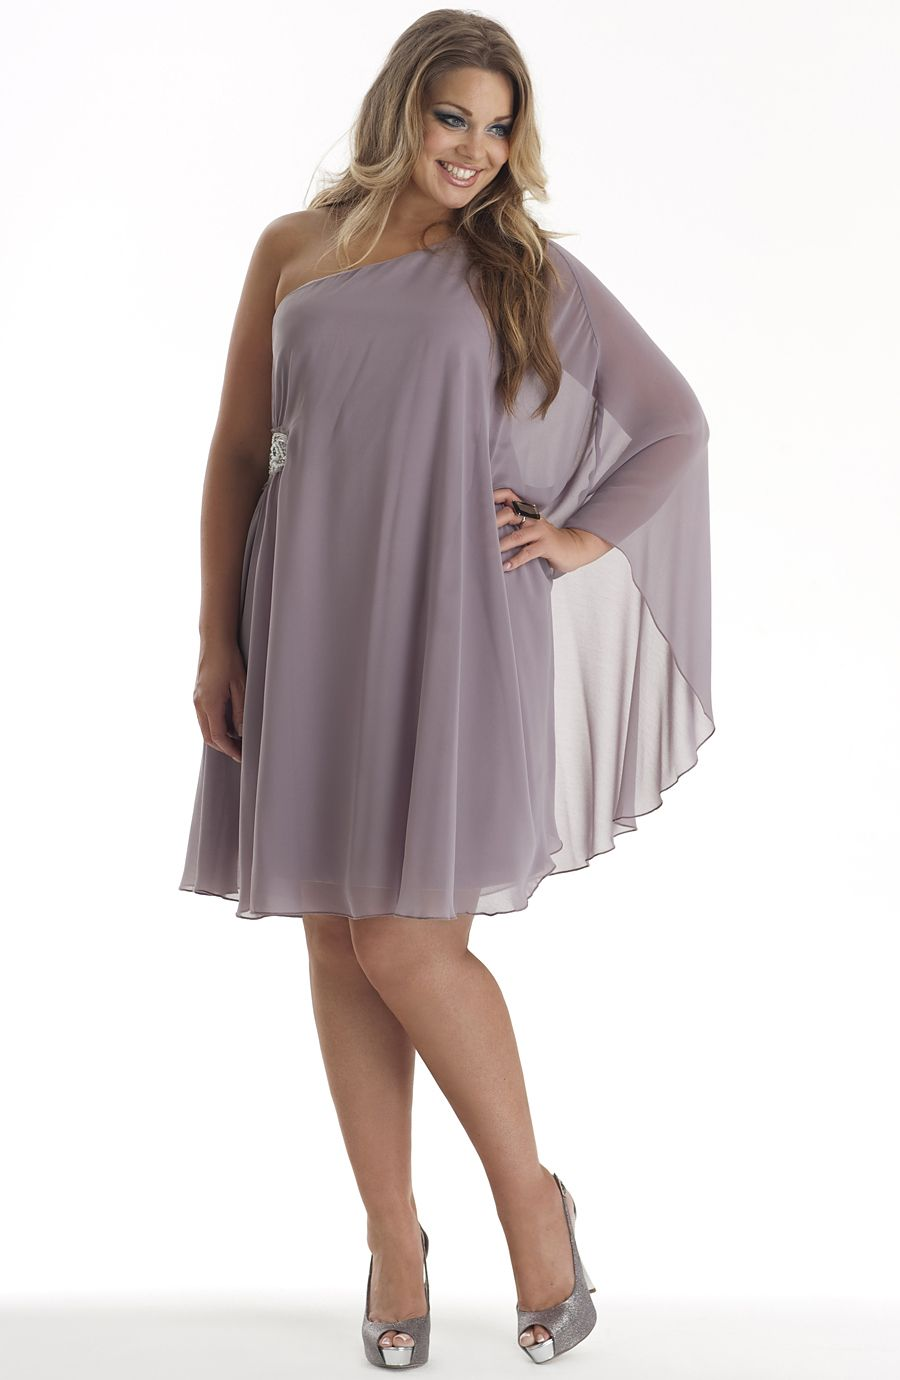 Dresses Evening Dresses Plus Size Larger Sizes Womens Clothing